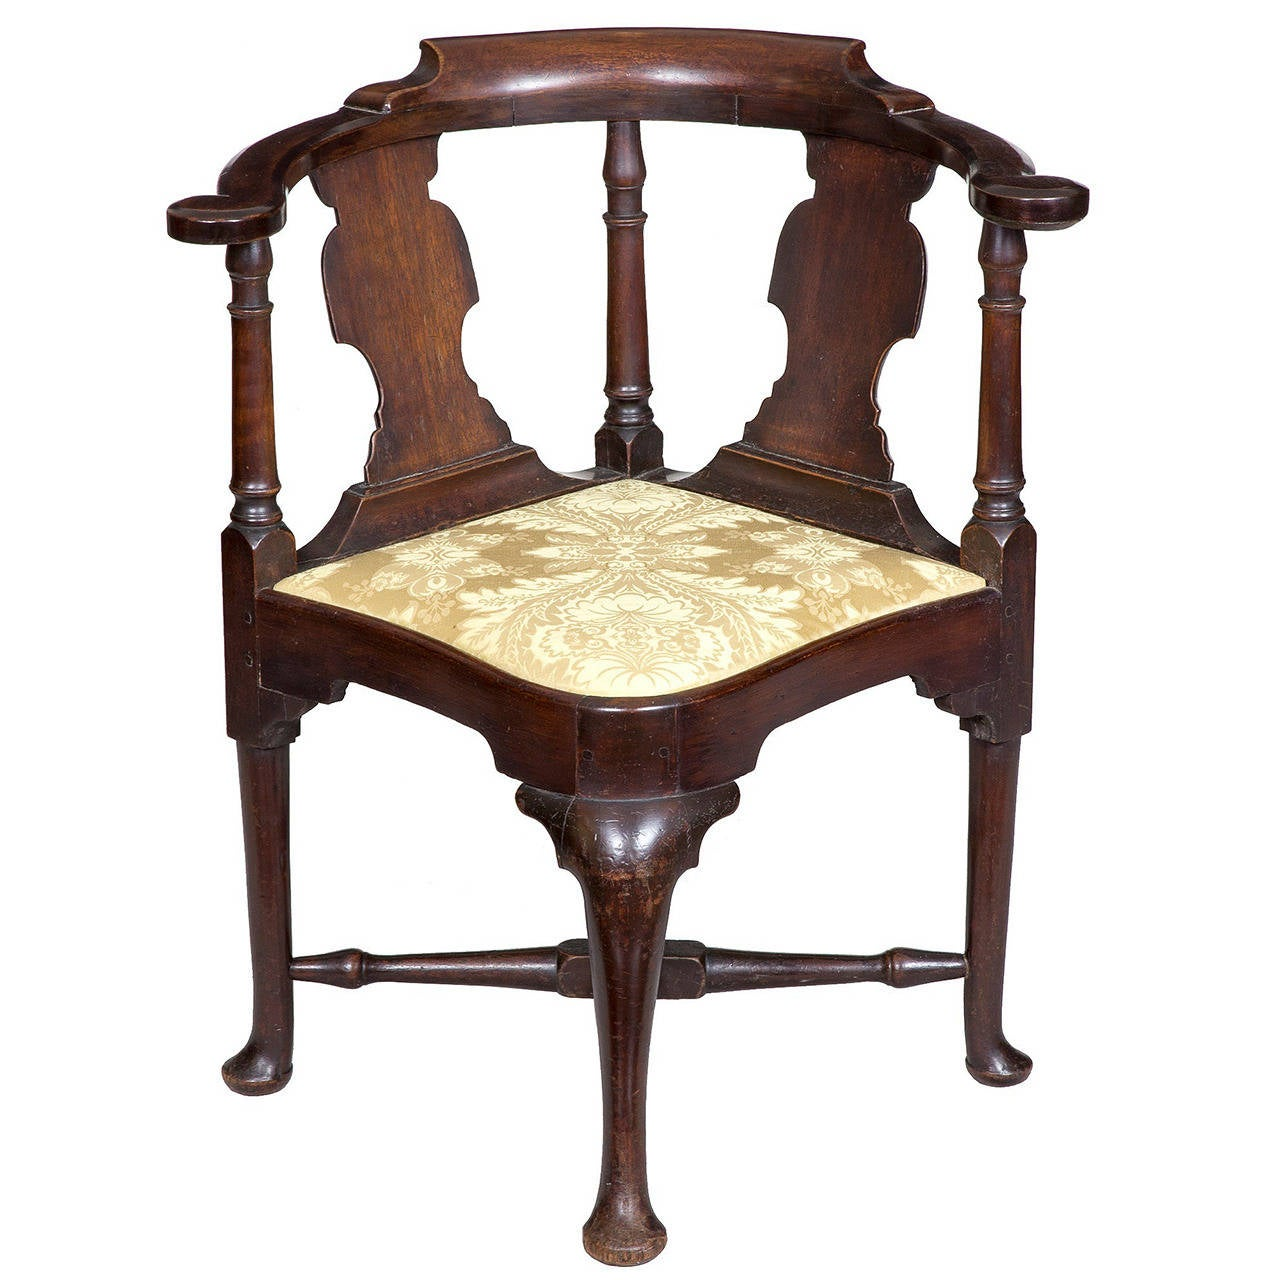 Mahogany queen anne corner chair with horseshoe seat for Queen anne furniture